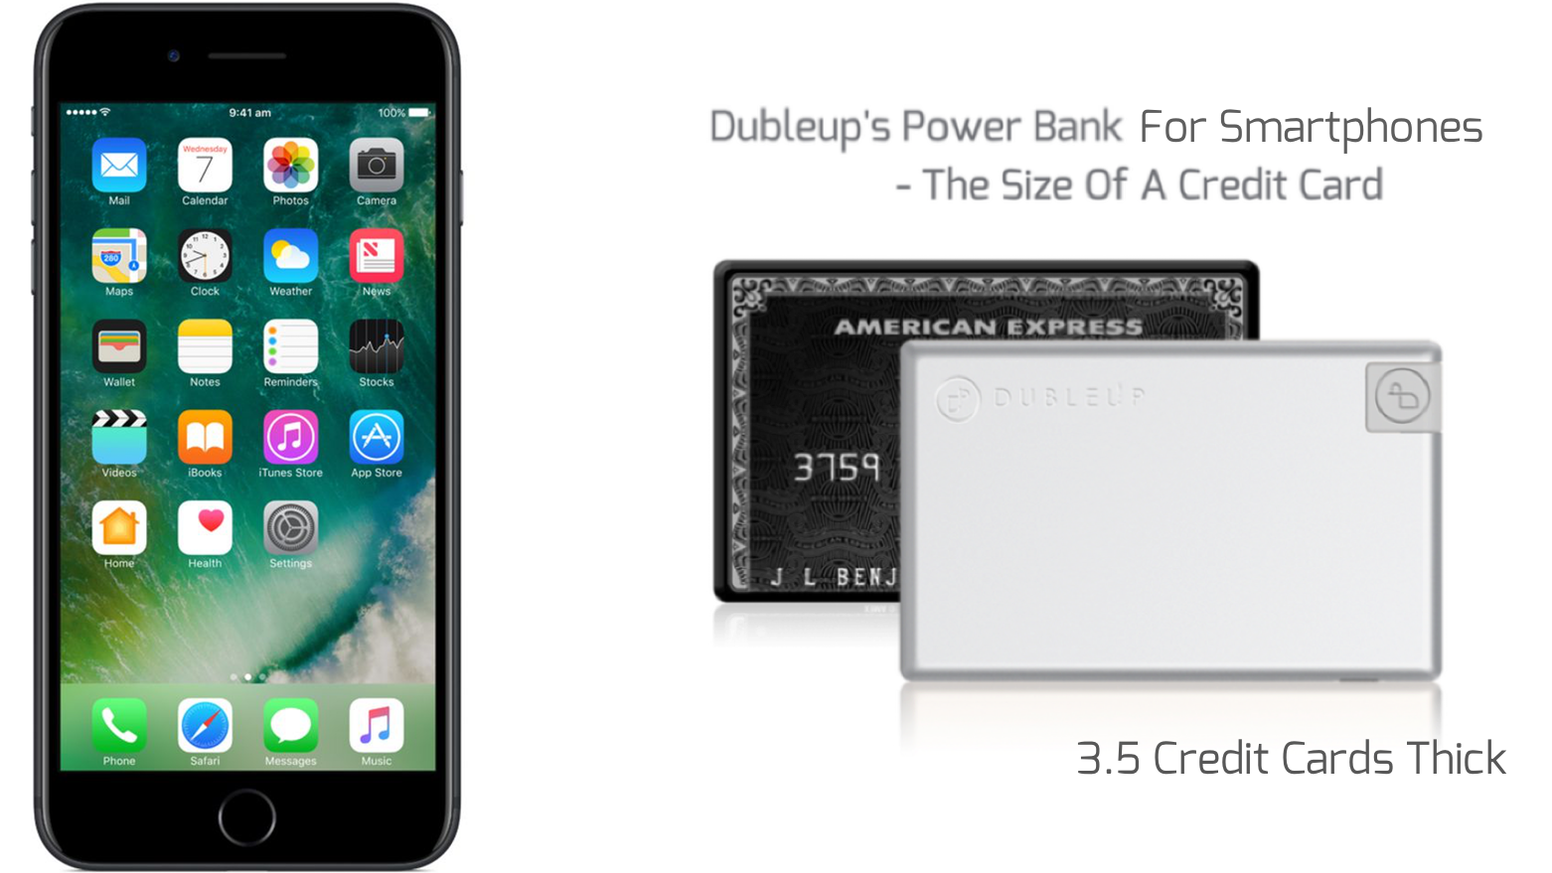 Charge your phone while you're on the move using Dubleup's Credit Card Sized Power Bank. It's the perfect fit for your wallet or purse.